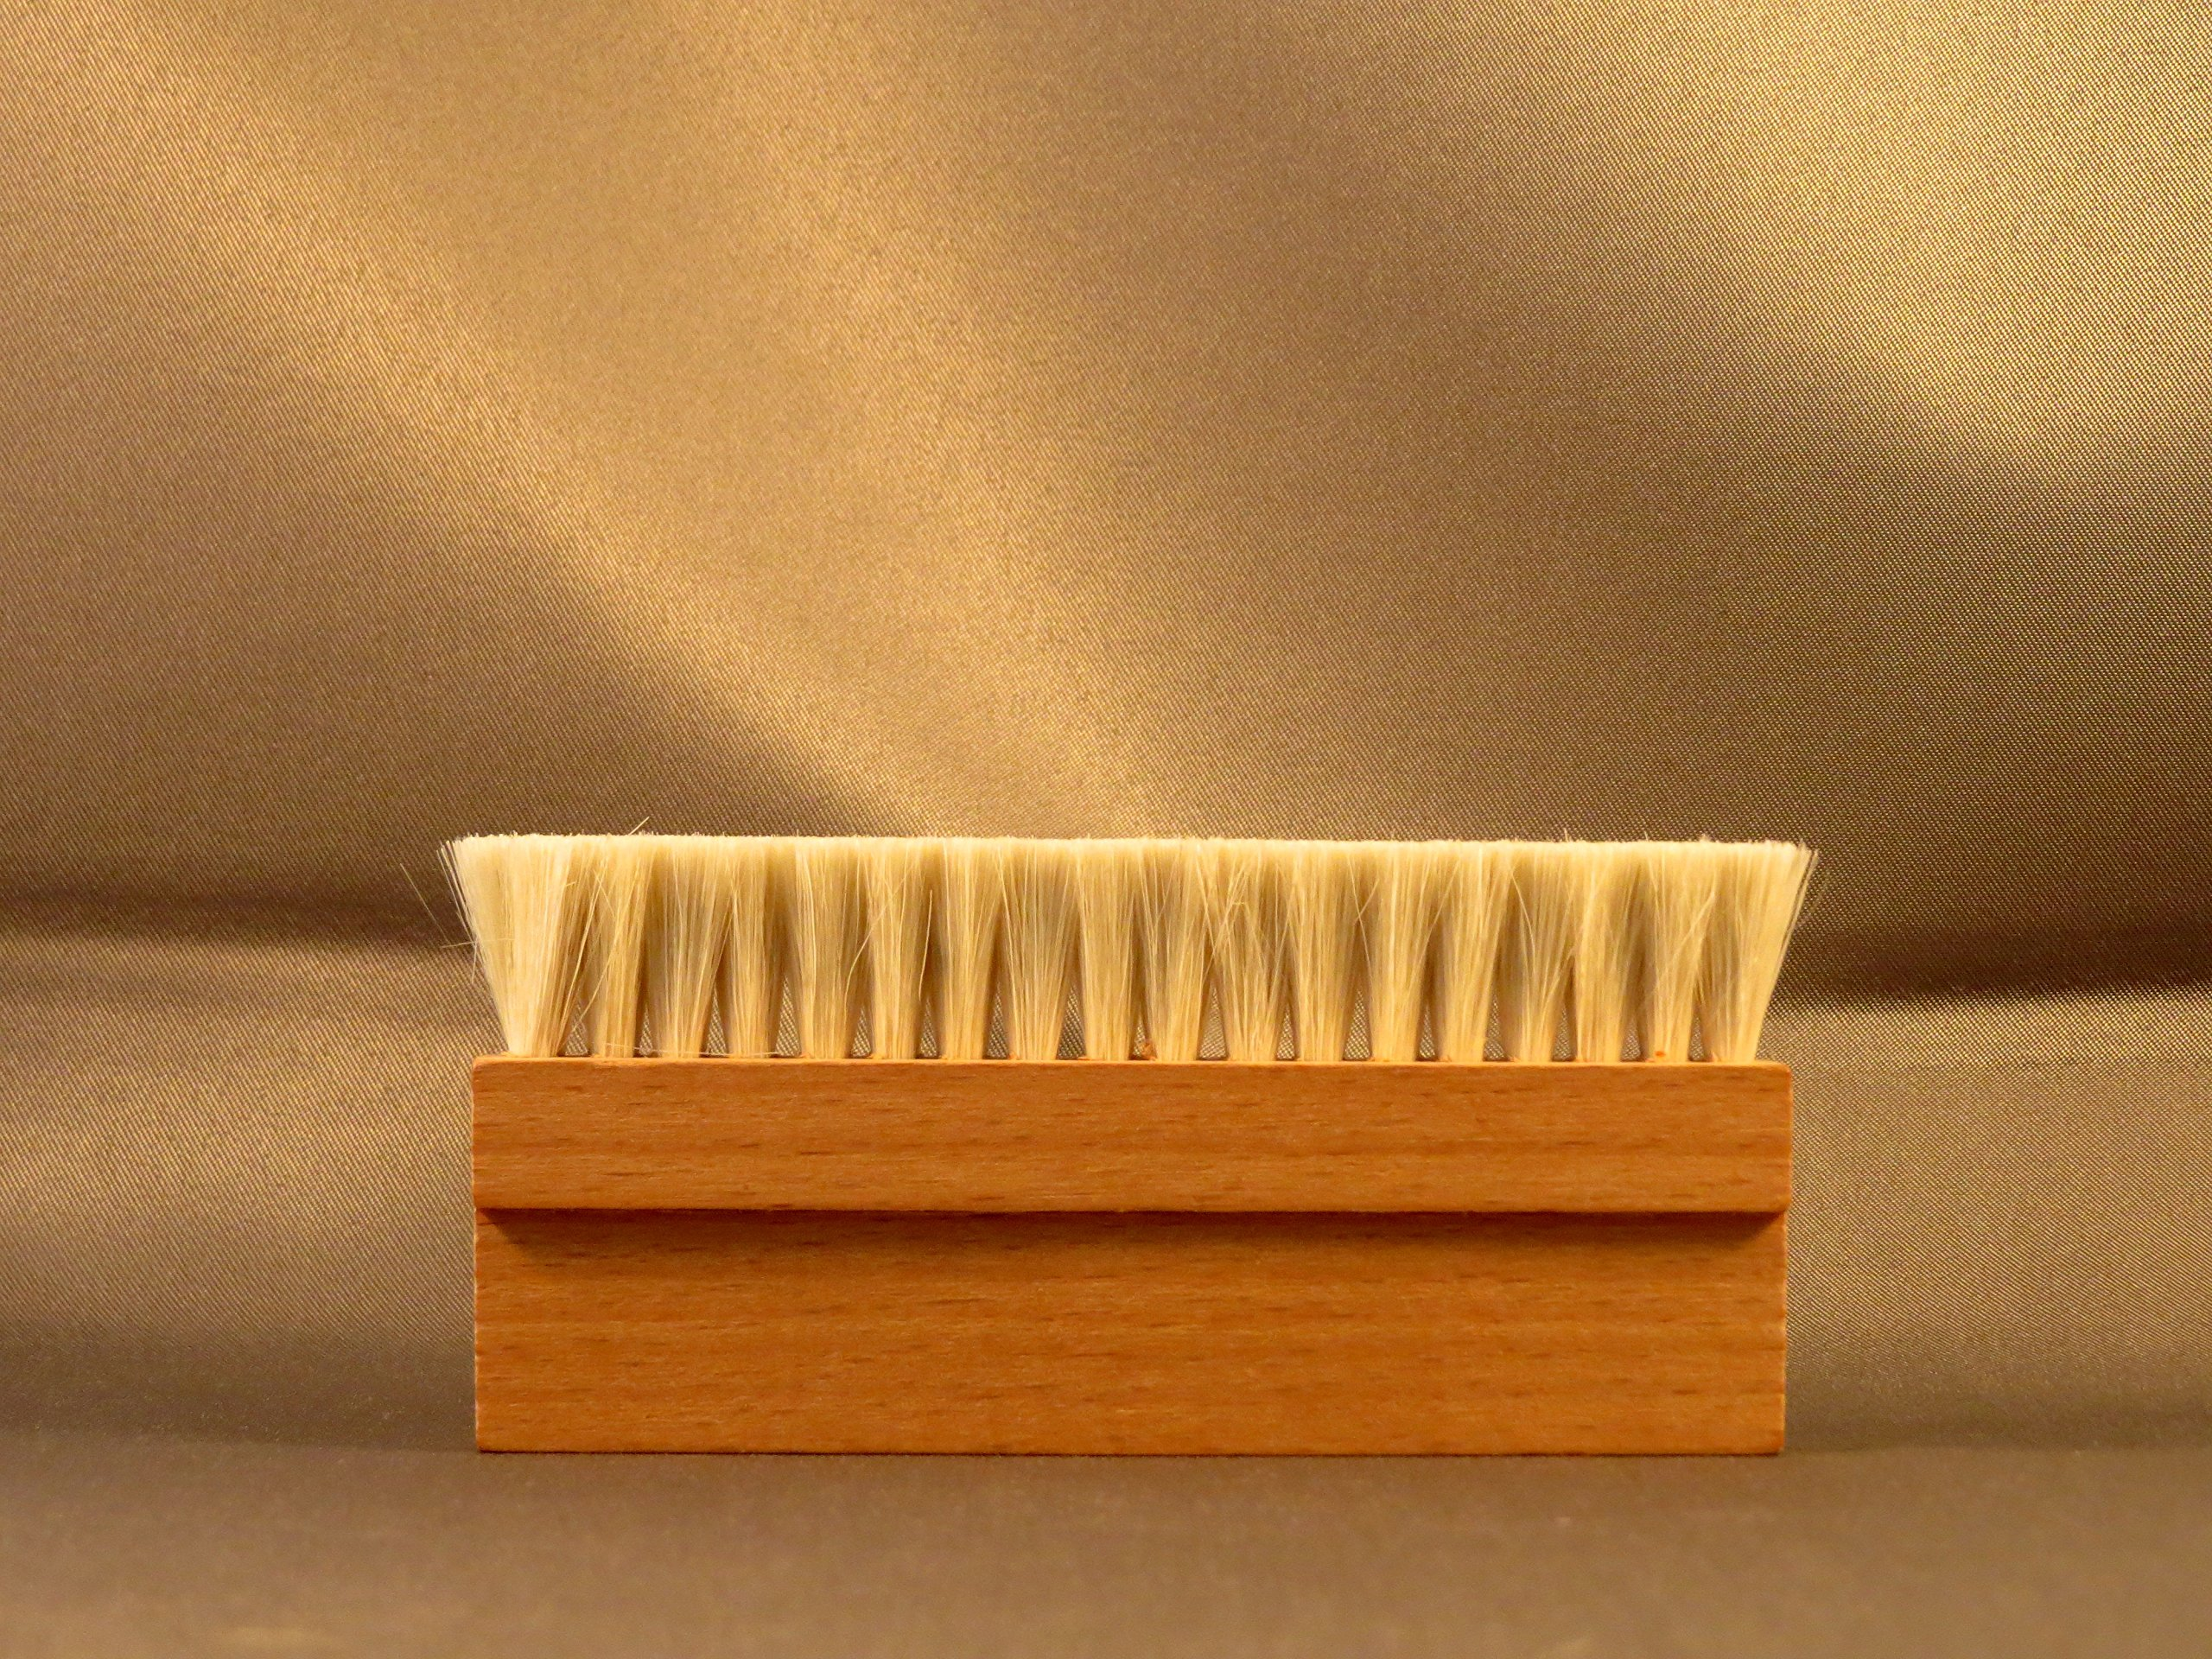 Wooden Goat Hair Anti Static Record Cleaning Brush Cleaner by Purest Audio